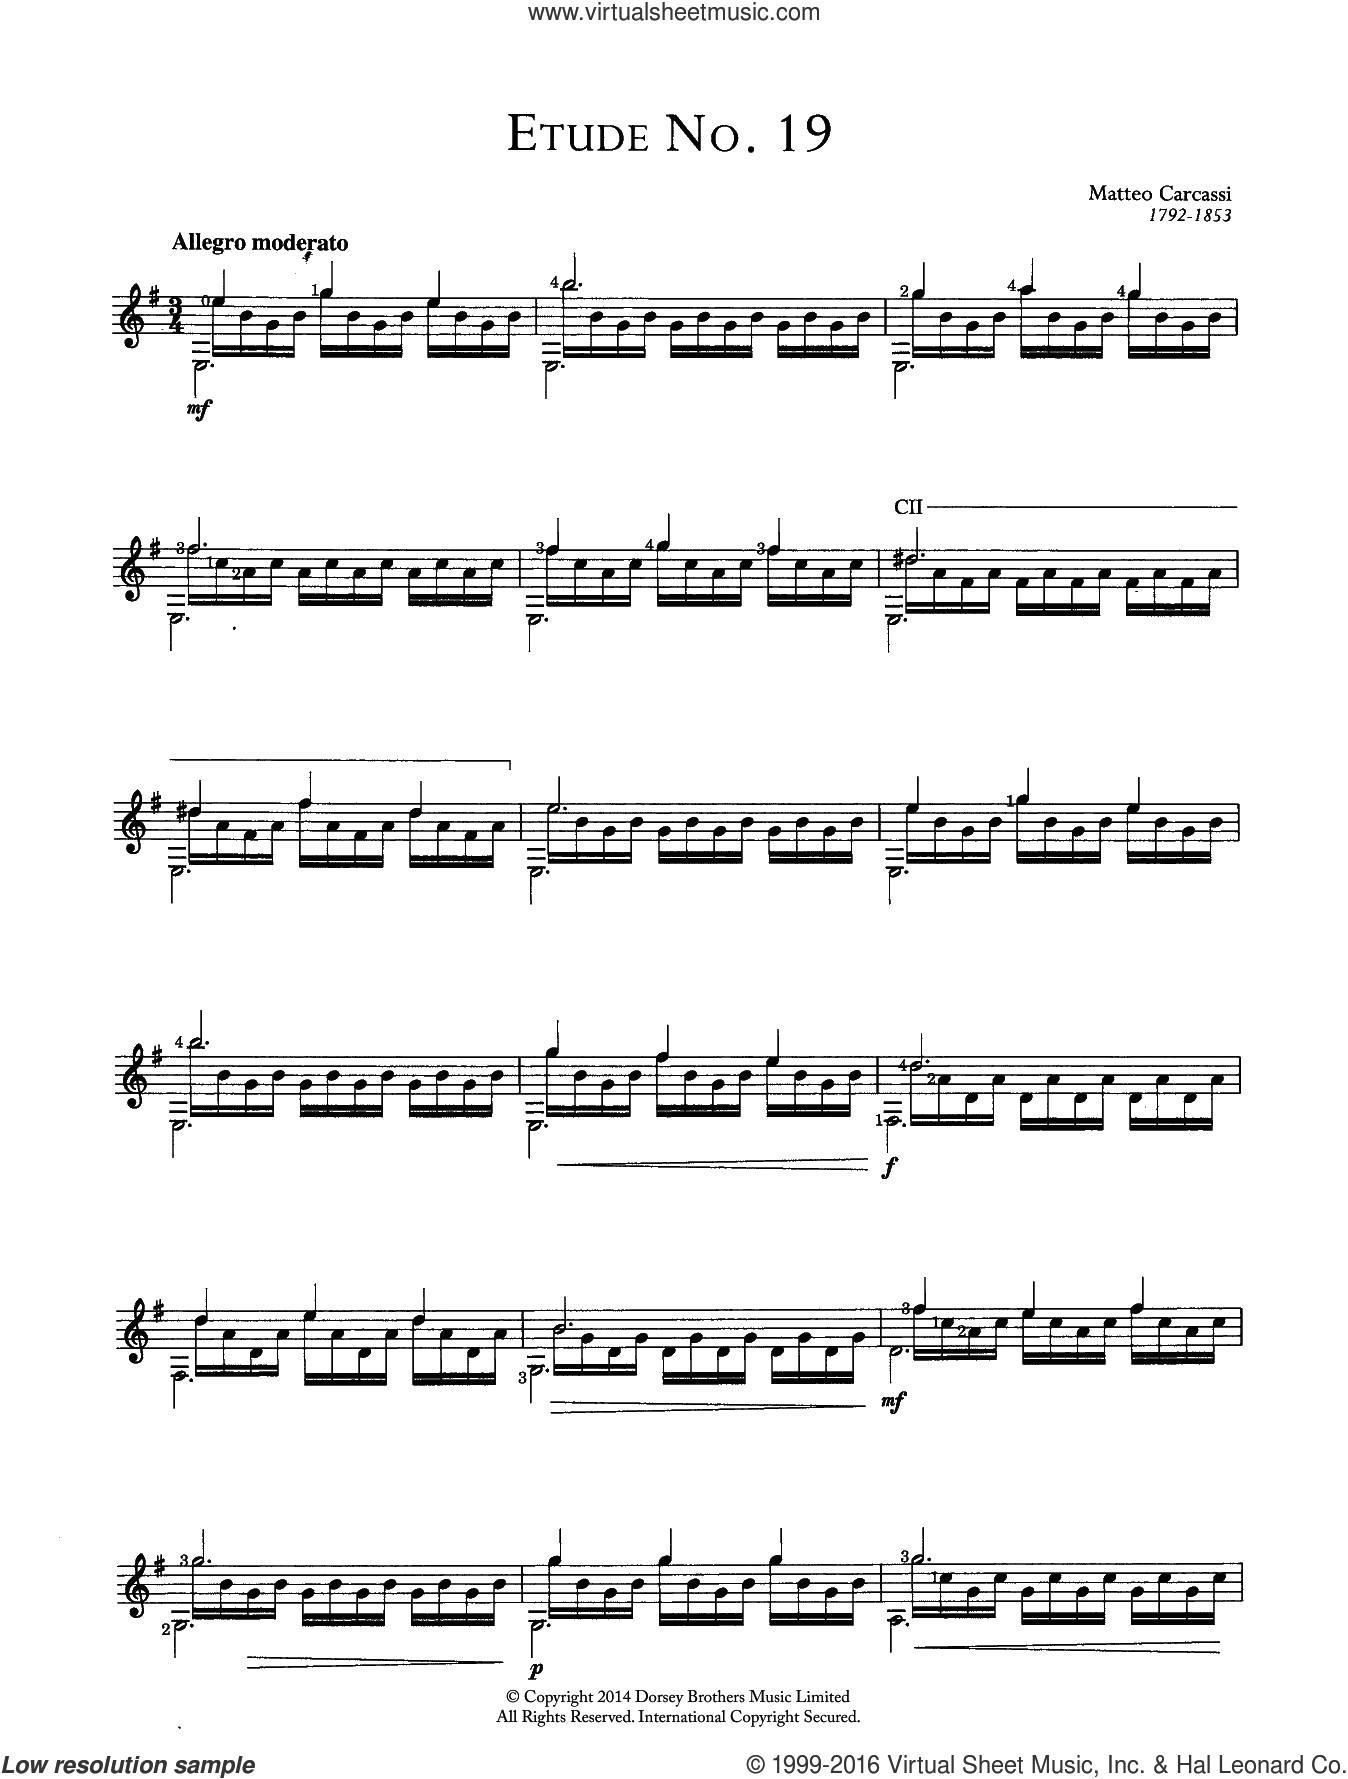 Etude No.19 sheet music for guitar solo (chords) by Matteo Carcassi, classical score, easy guitar (chords)